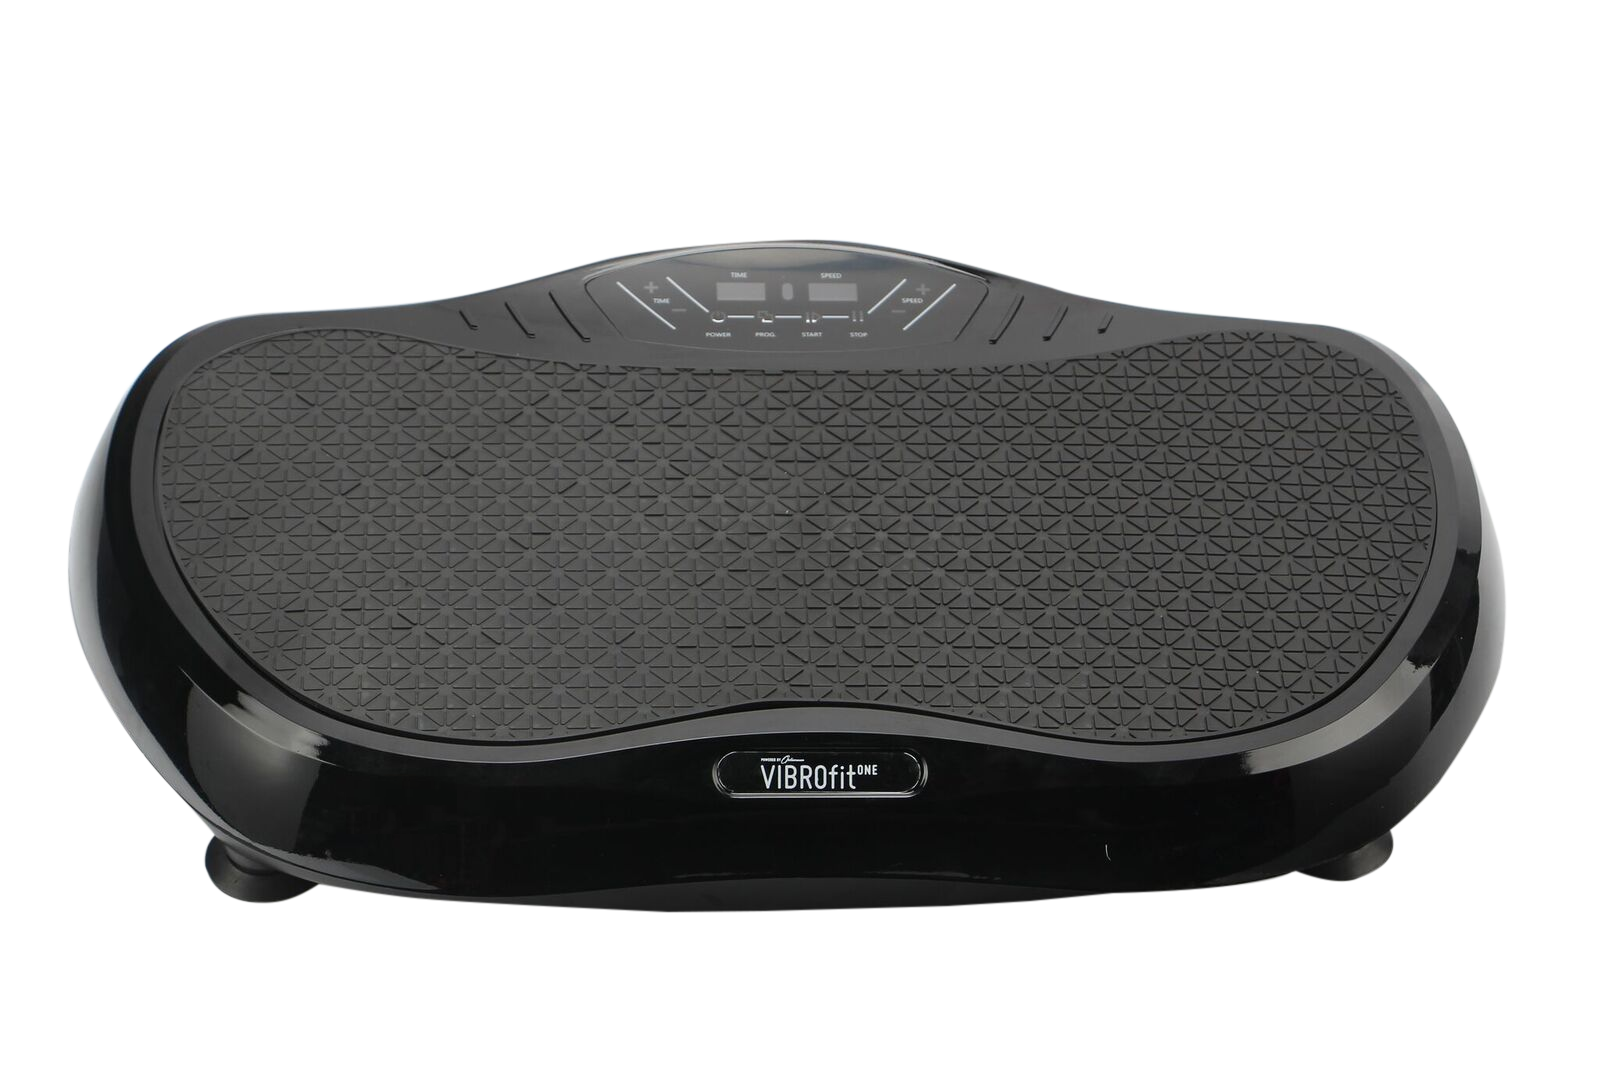 Vibrofit One – Sleek And Compact Multi-Directional Vibration Fitness Plates